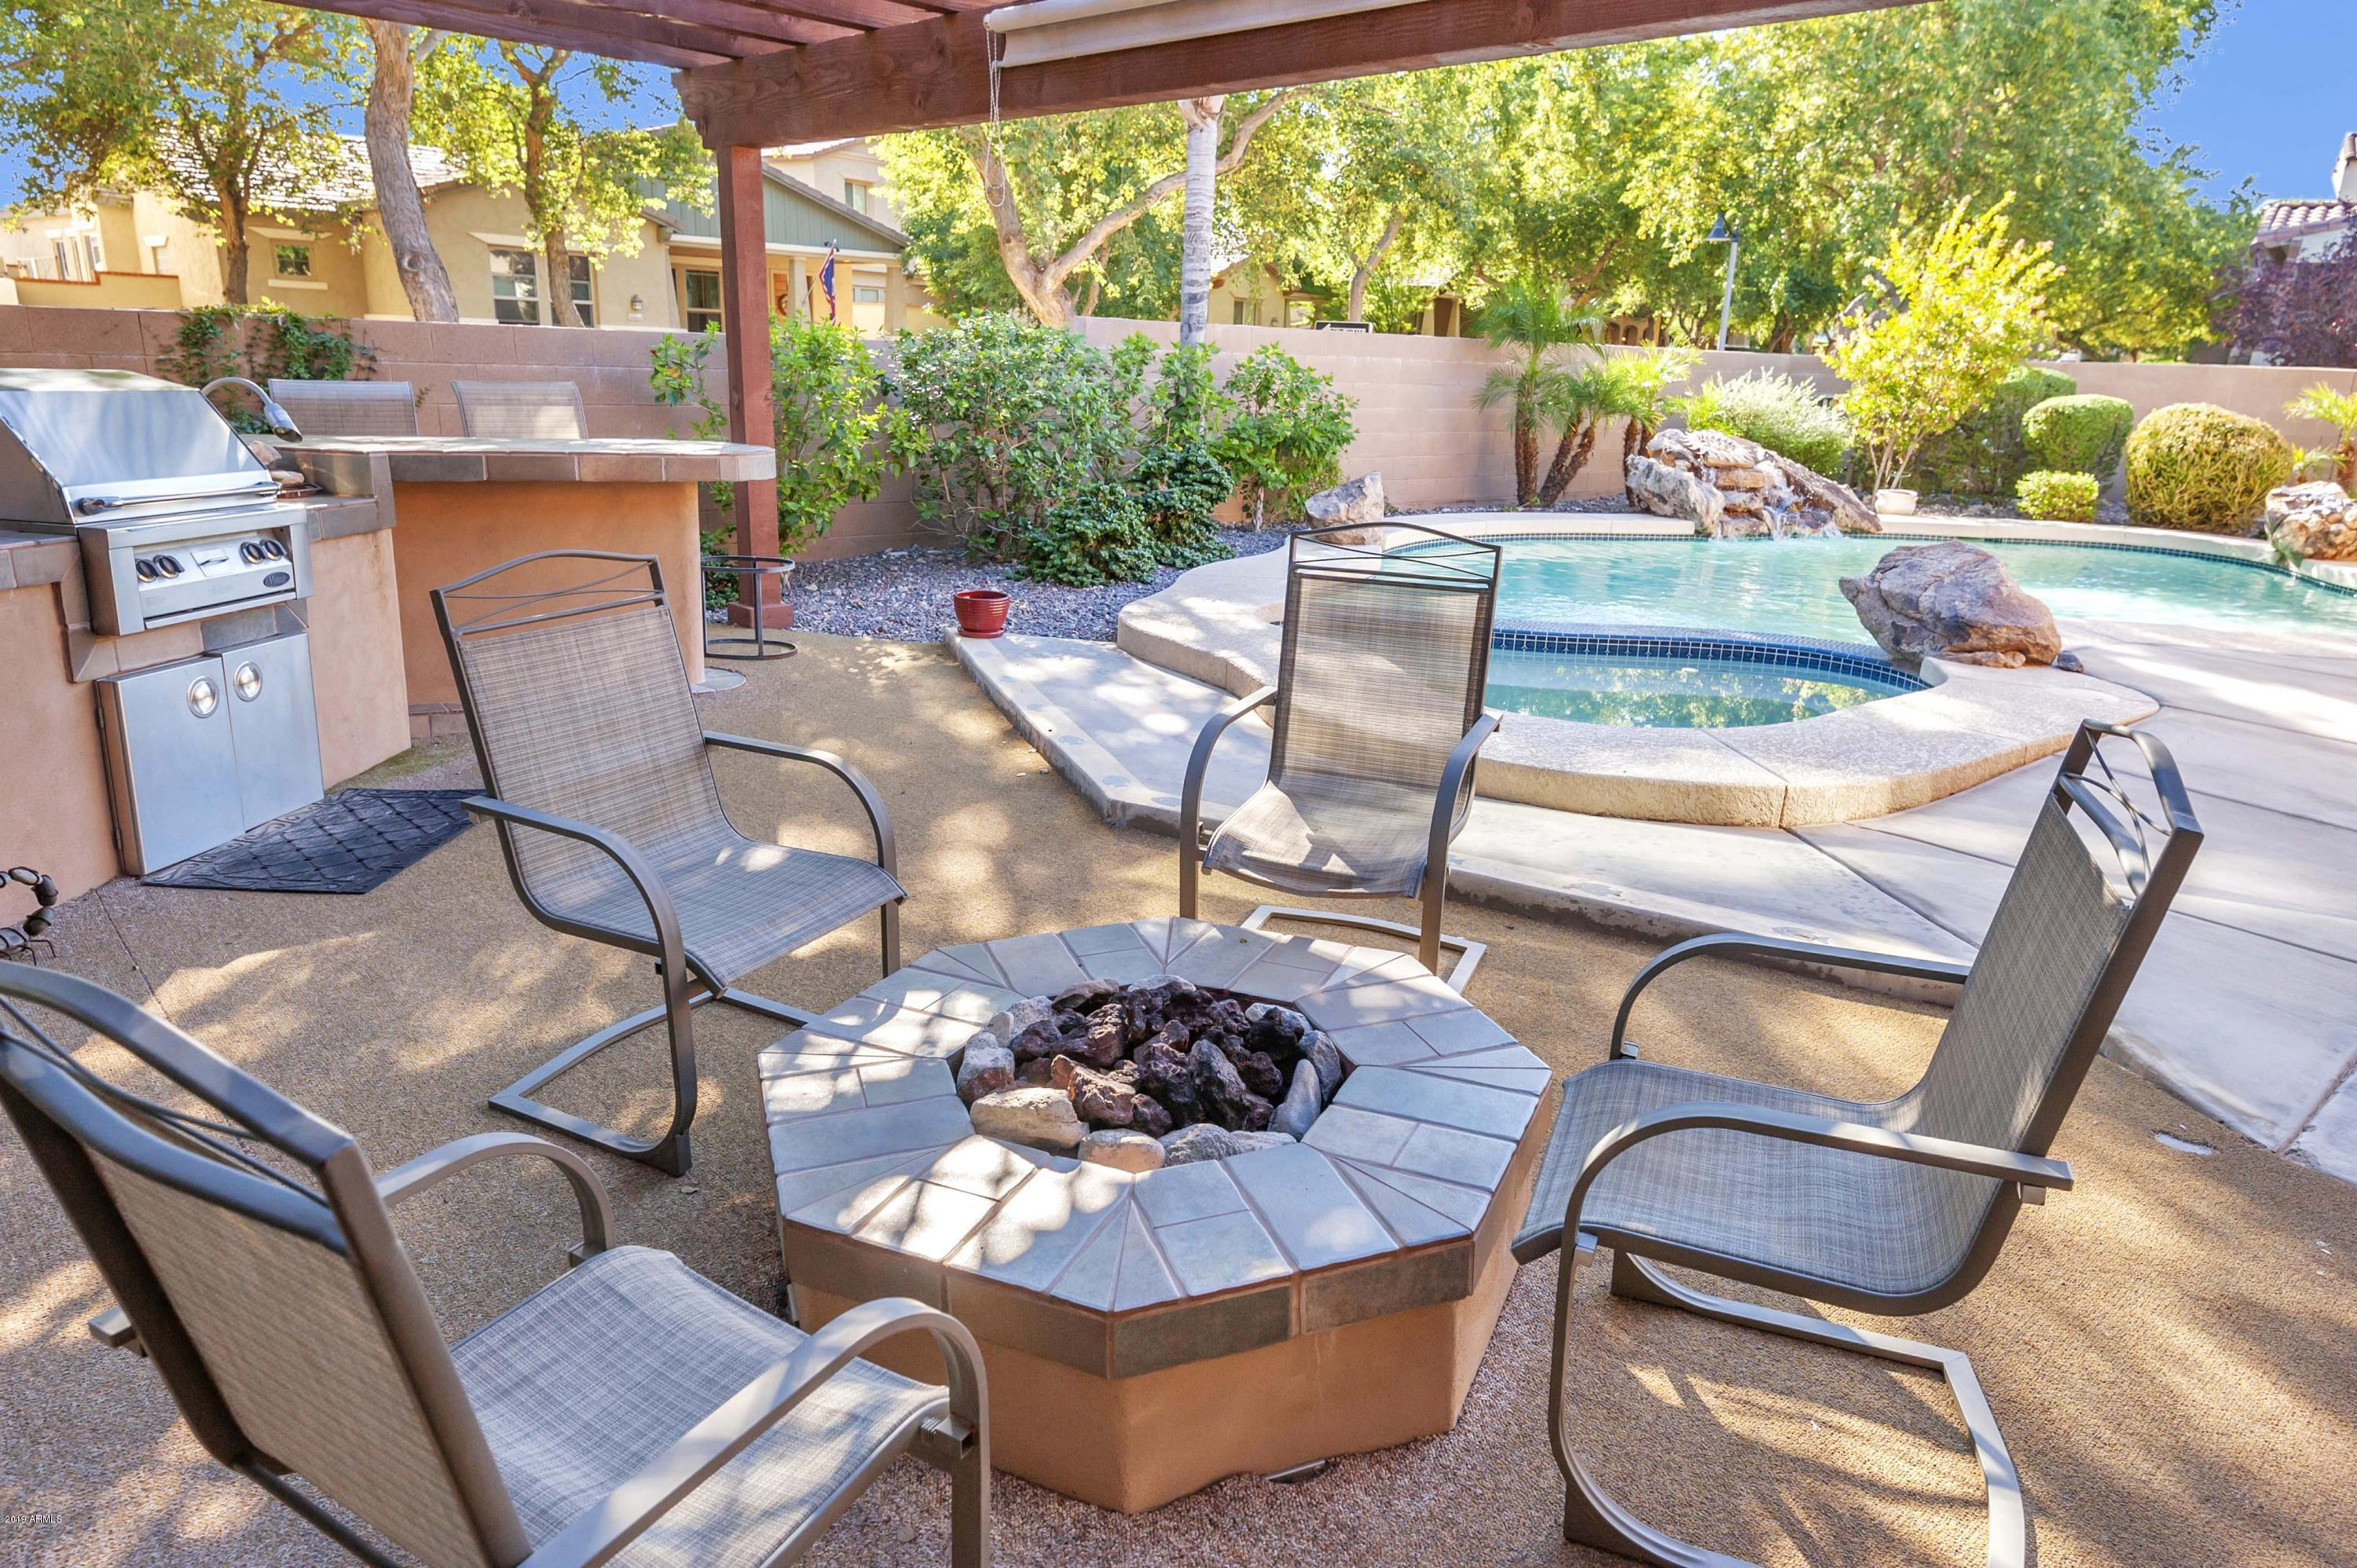 MLS 5839705 3994 N SIDNEY Street, Buckeye, AZ 85396 Buckeye AZ Private Pool